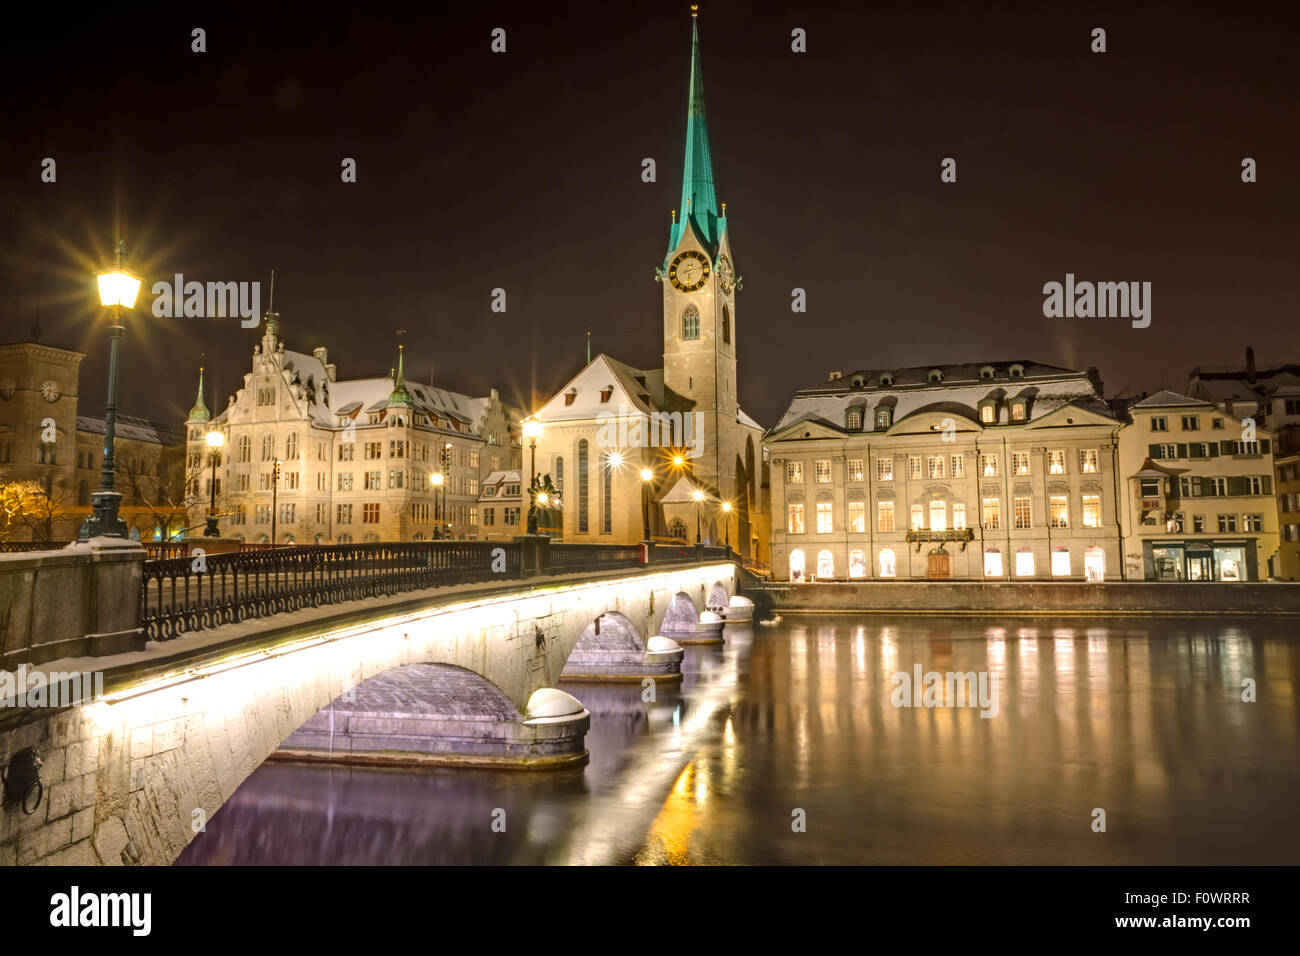 Nightscene at the banks of river Limmat in Zurich - Stock Image